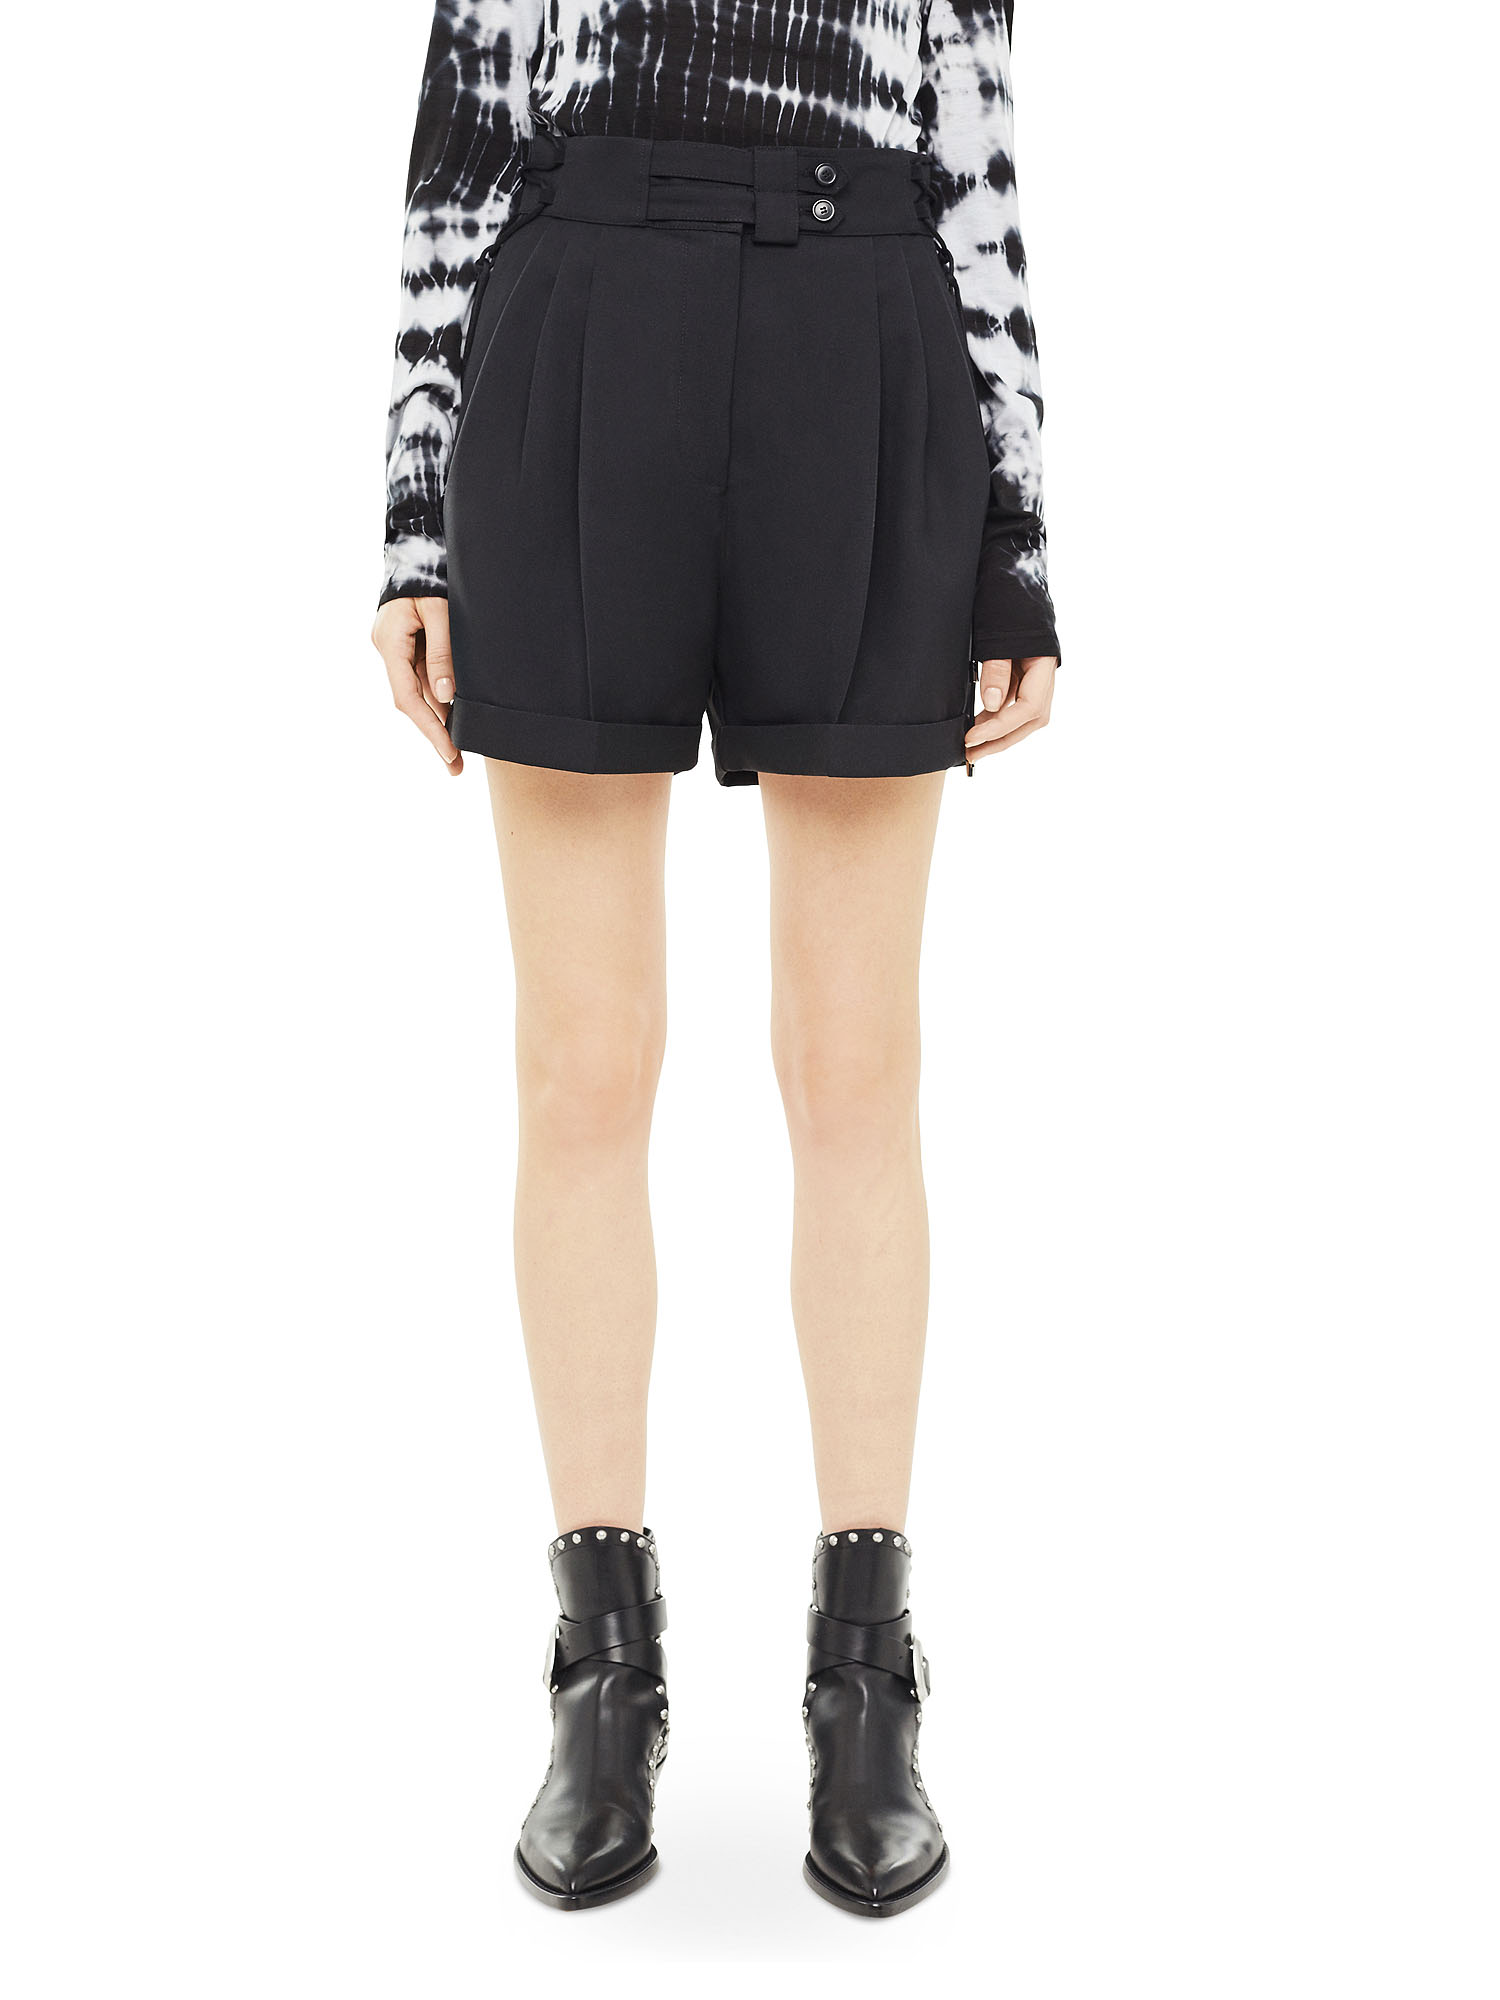 Diesel - SHERIE,  - Shorts - Image 1